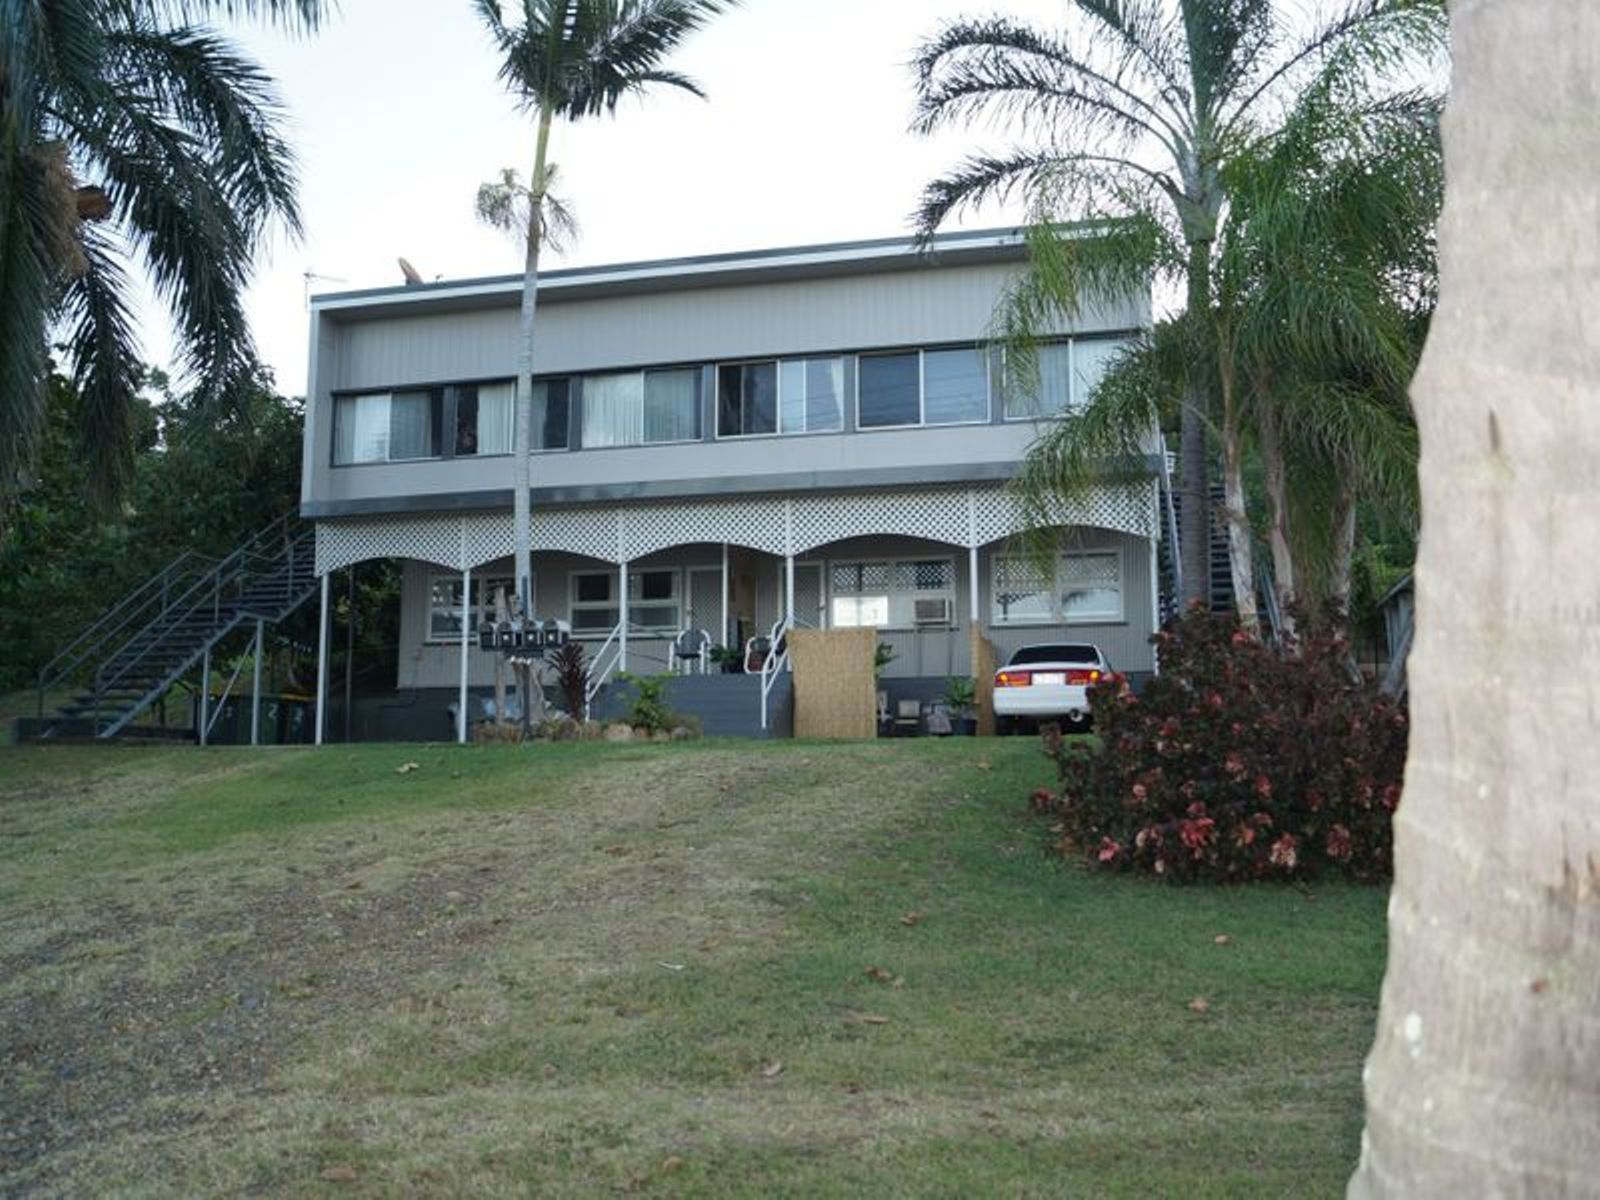 1,2,3,4/50 Farnborough Road, Yeppoon, QLD 4703